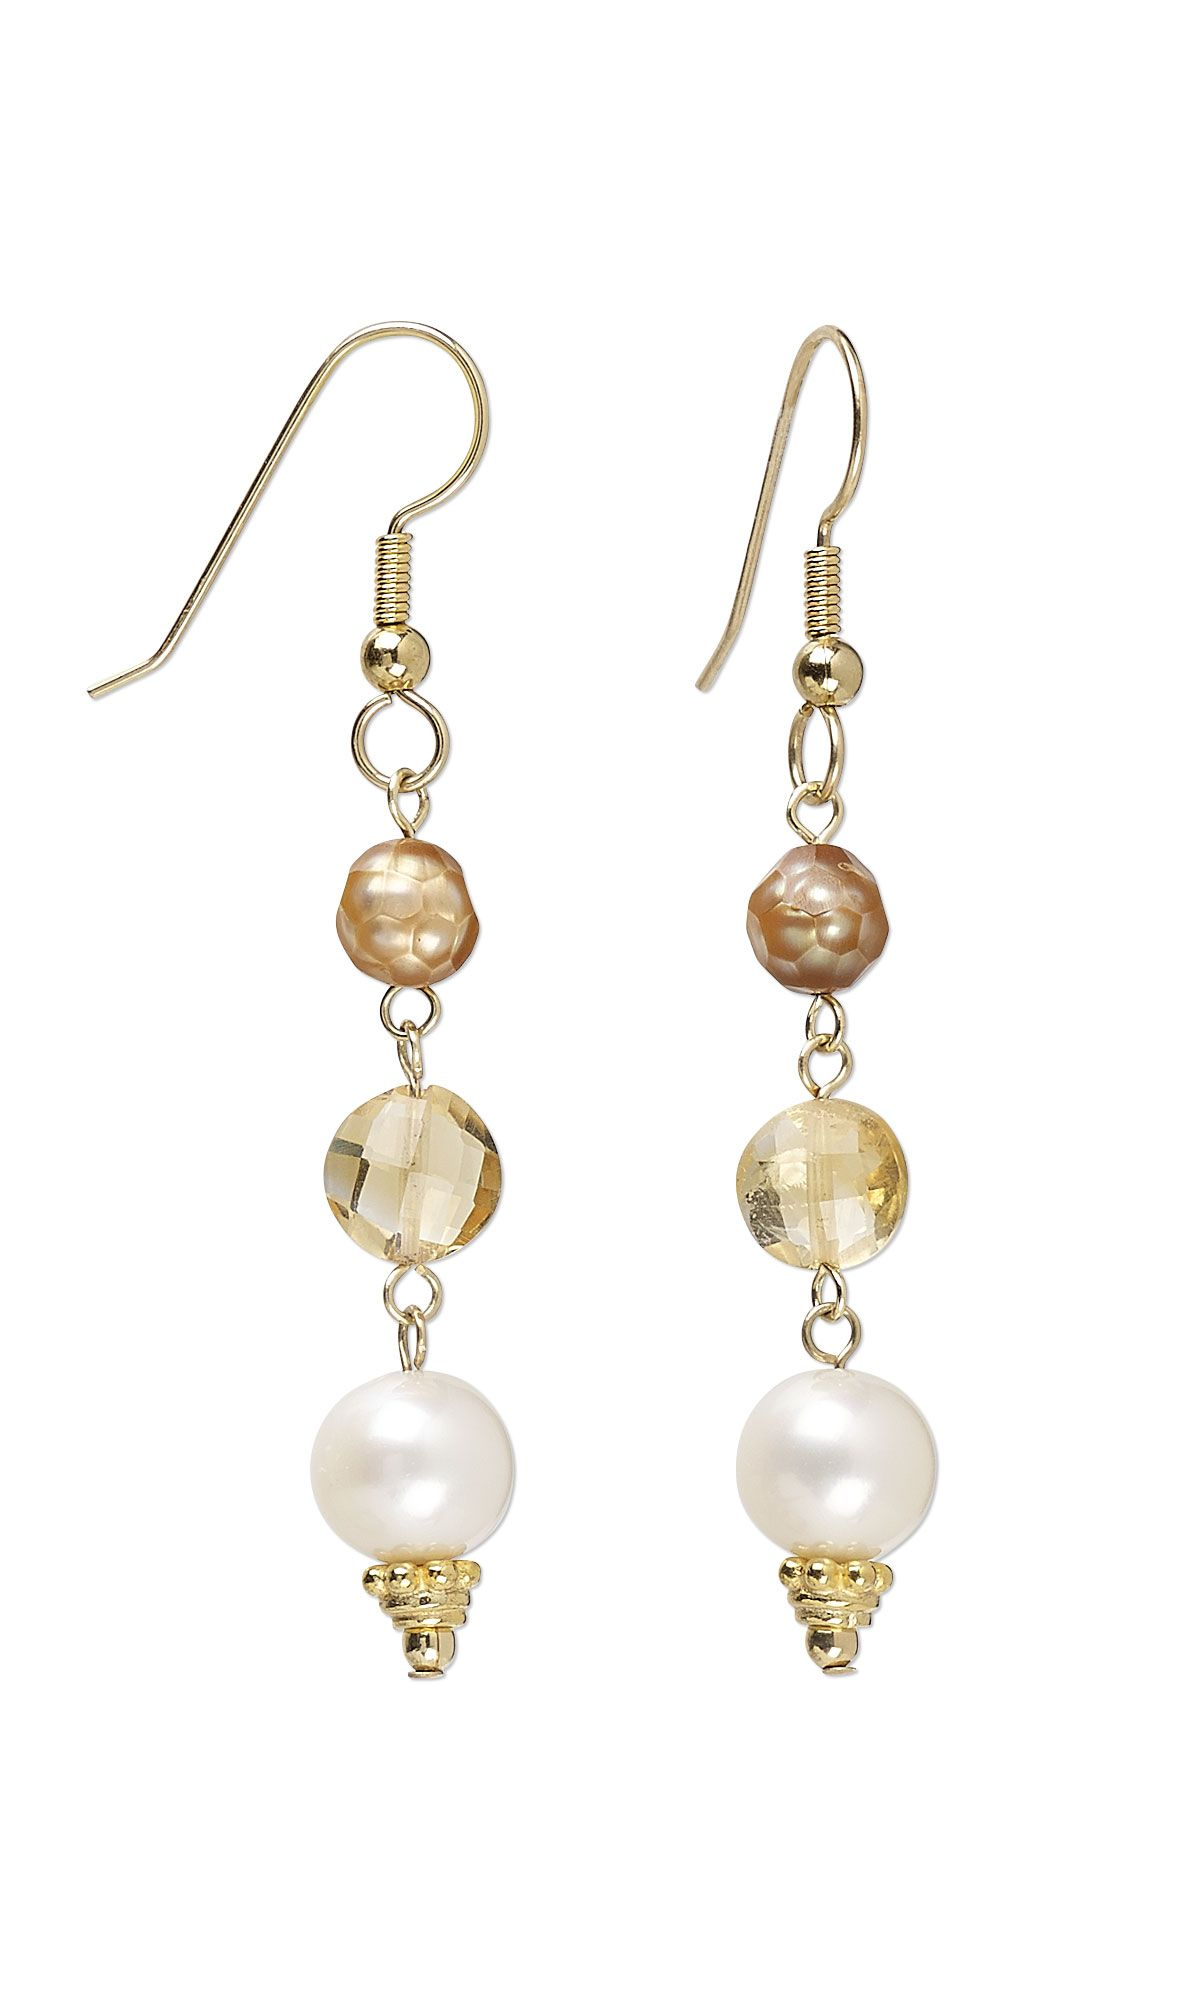 Jewelry Design - Earrings with Citrine Gemstone Beads and Cultured ...